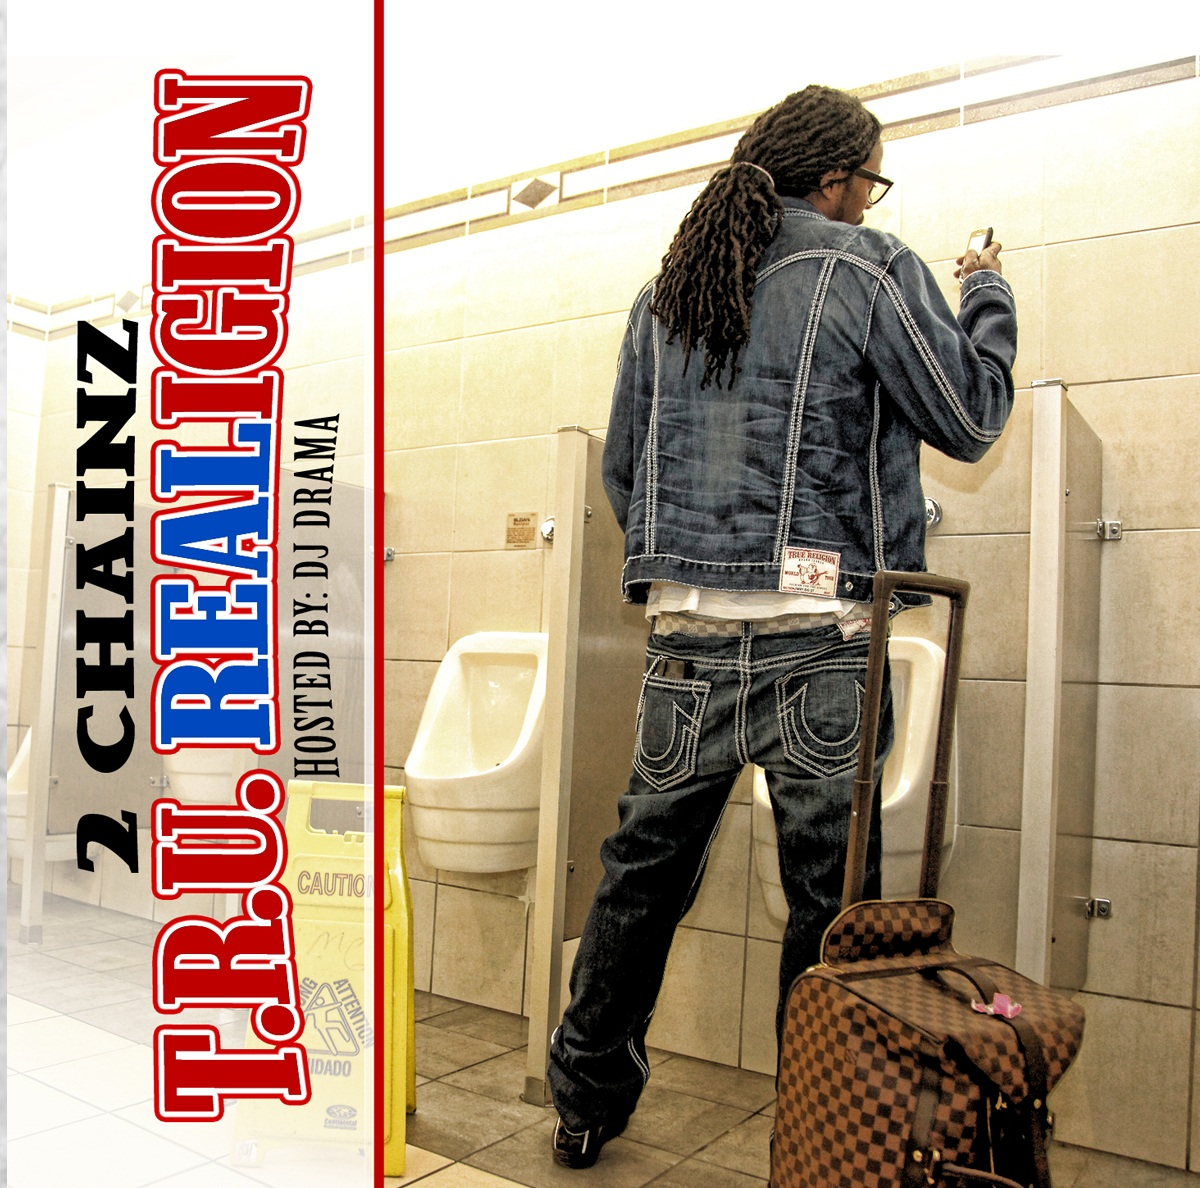 True Religion Jeans Chief Keef Buying True Religion Jeans in